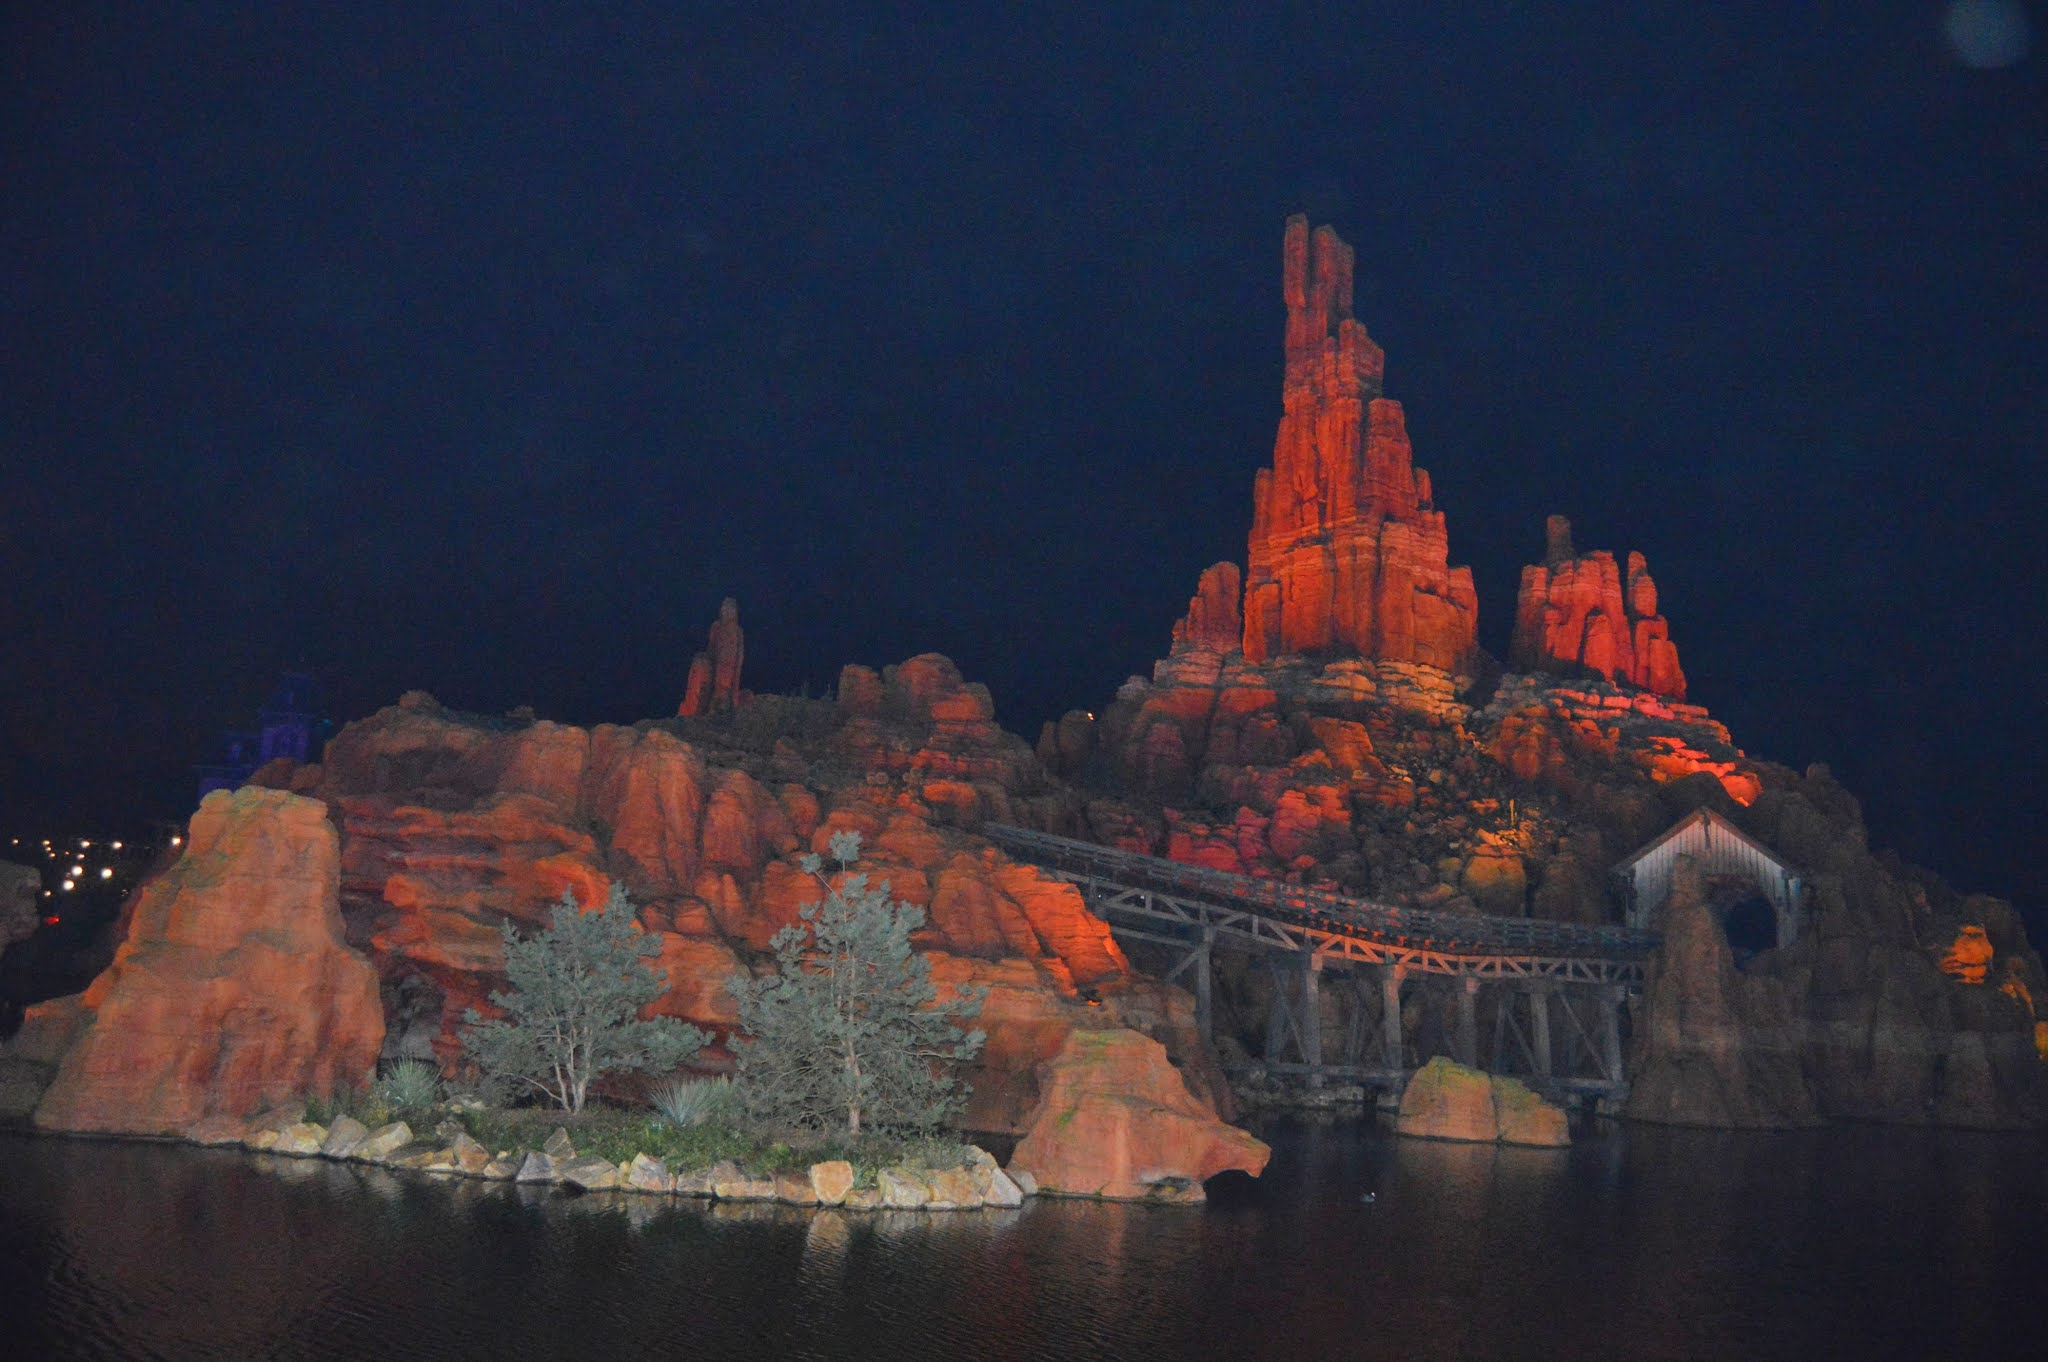 big thunder mountain at night time